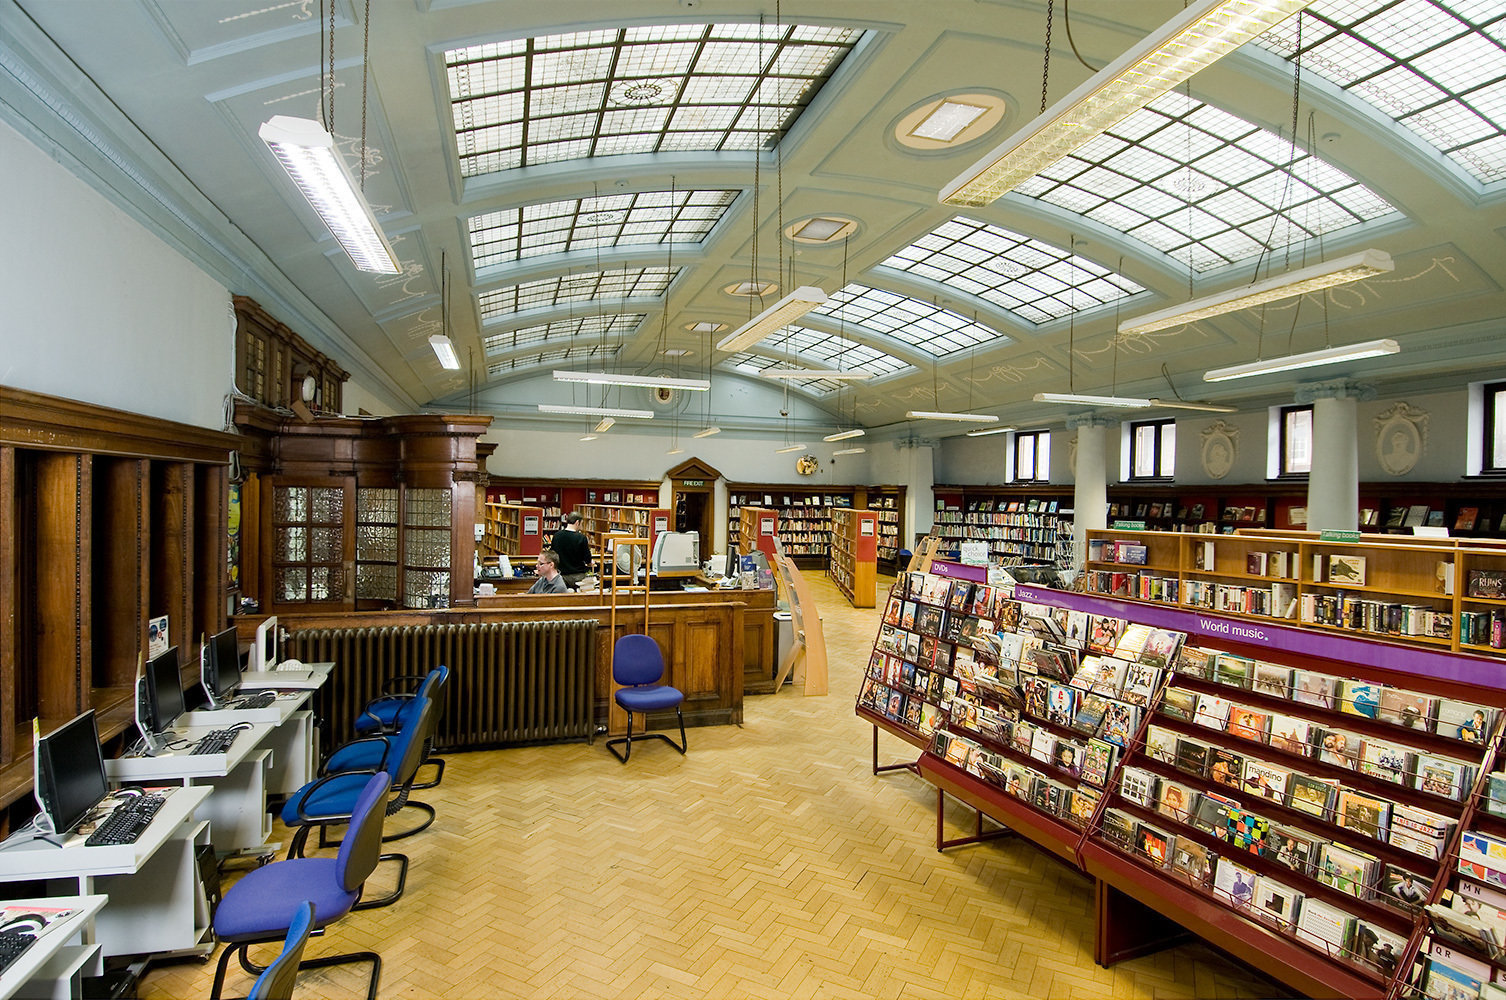 Bethnal Green Library: A Work-Friendly Place in London